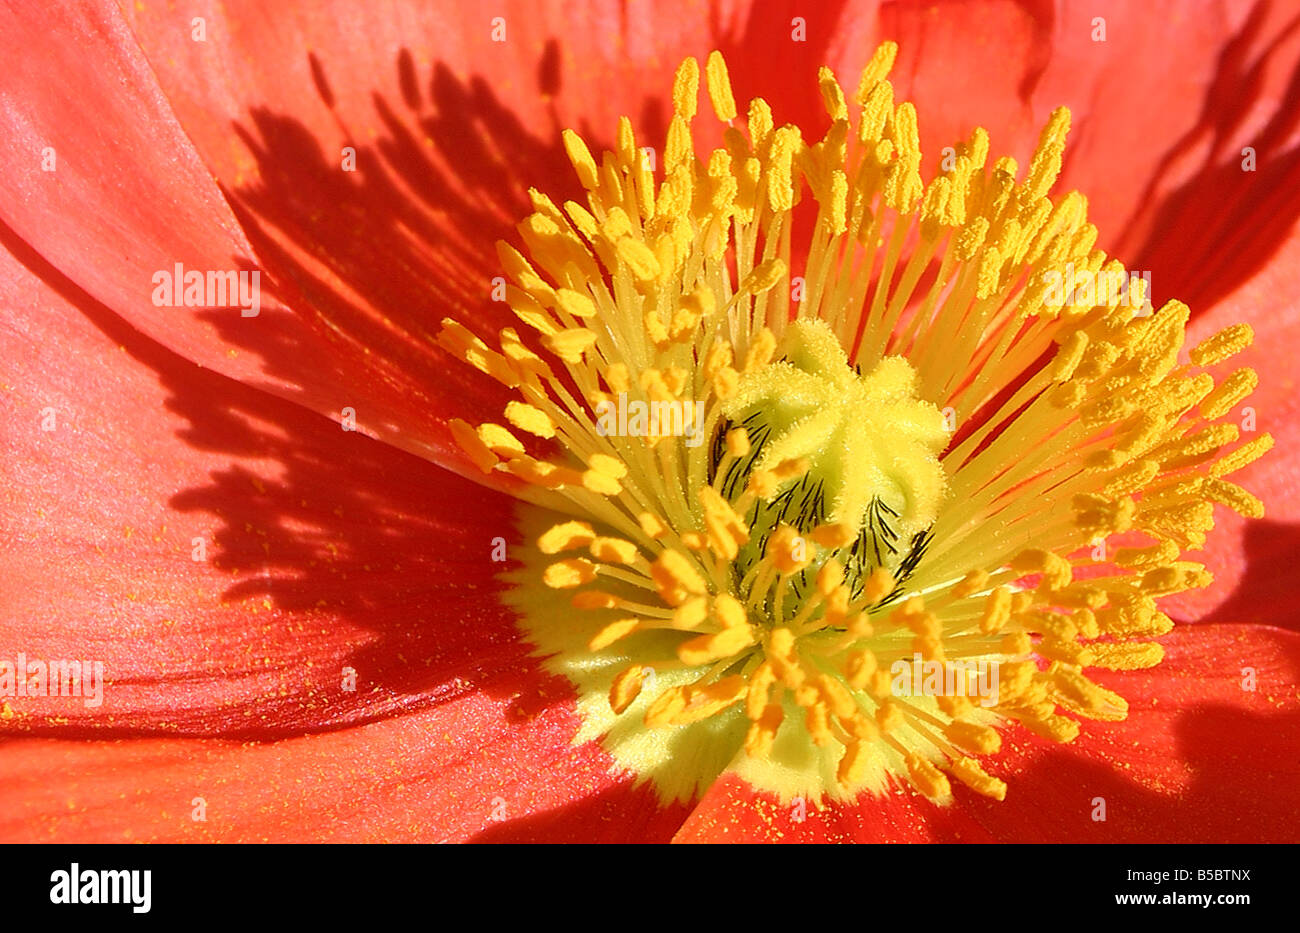 USA. Stock image of an orange Iceland poppy glowing in the sunlight. - Stock Image